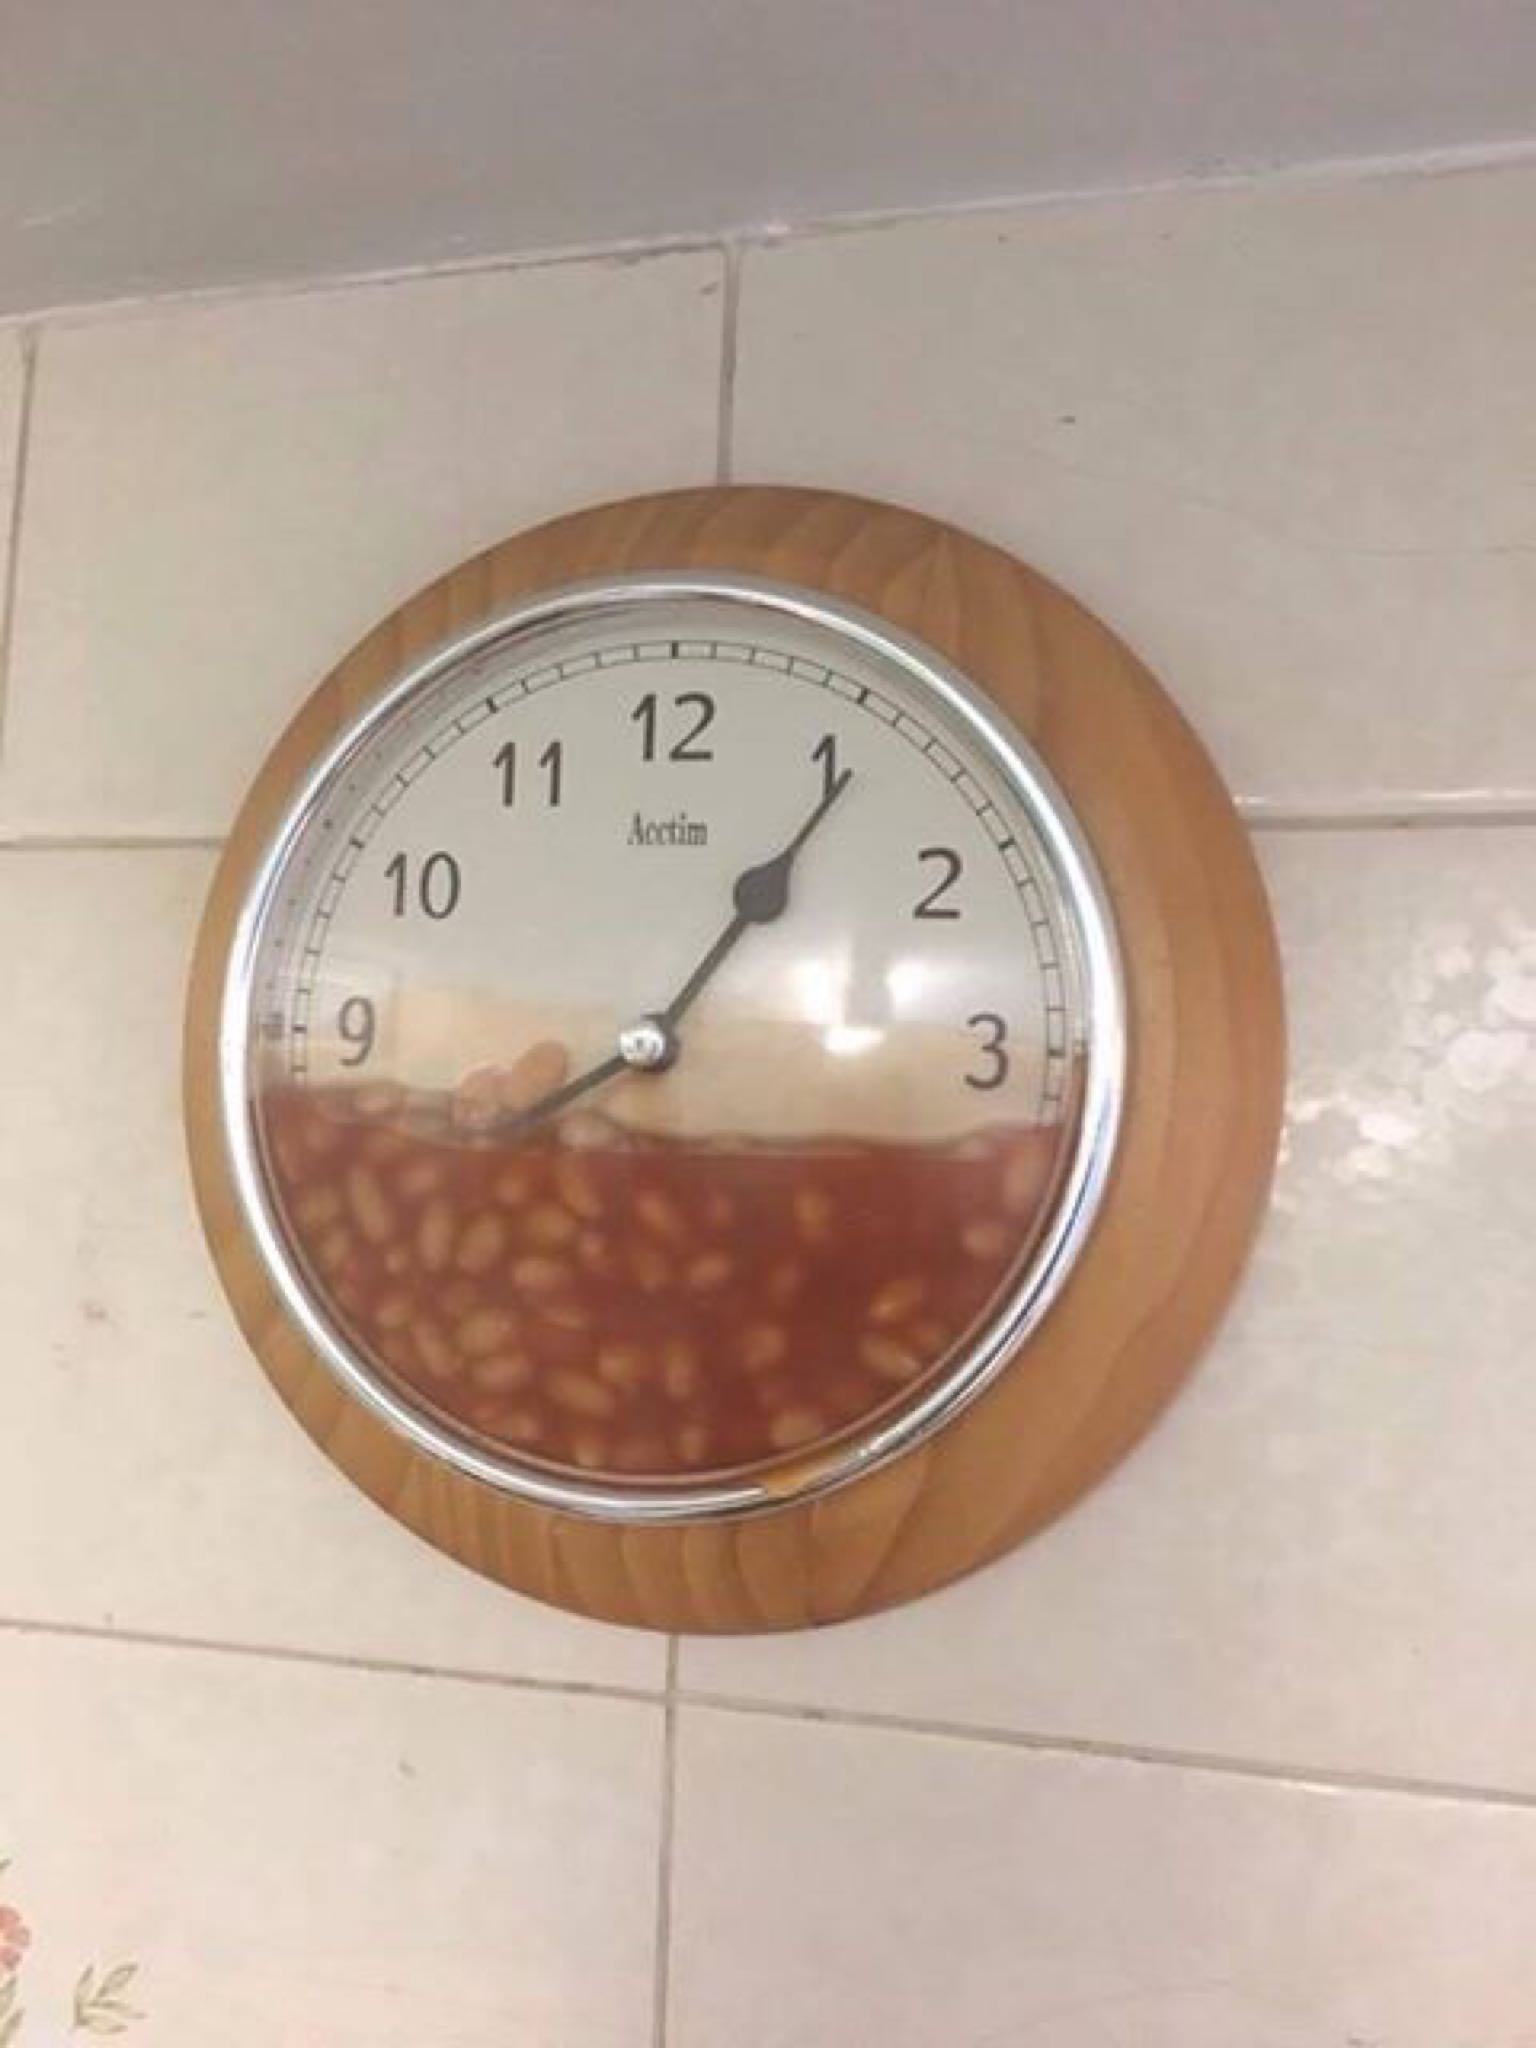 look at the time https://t.co/0lmauf0rif